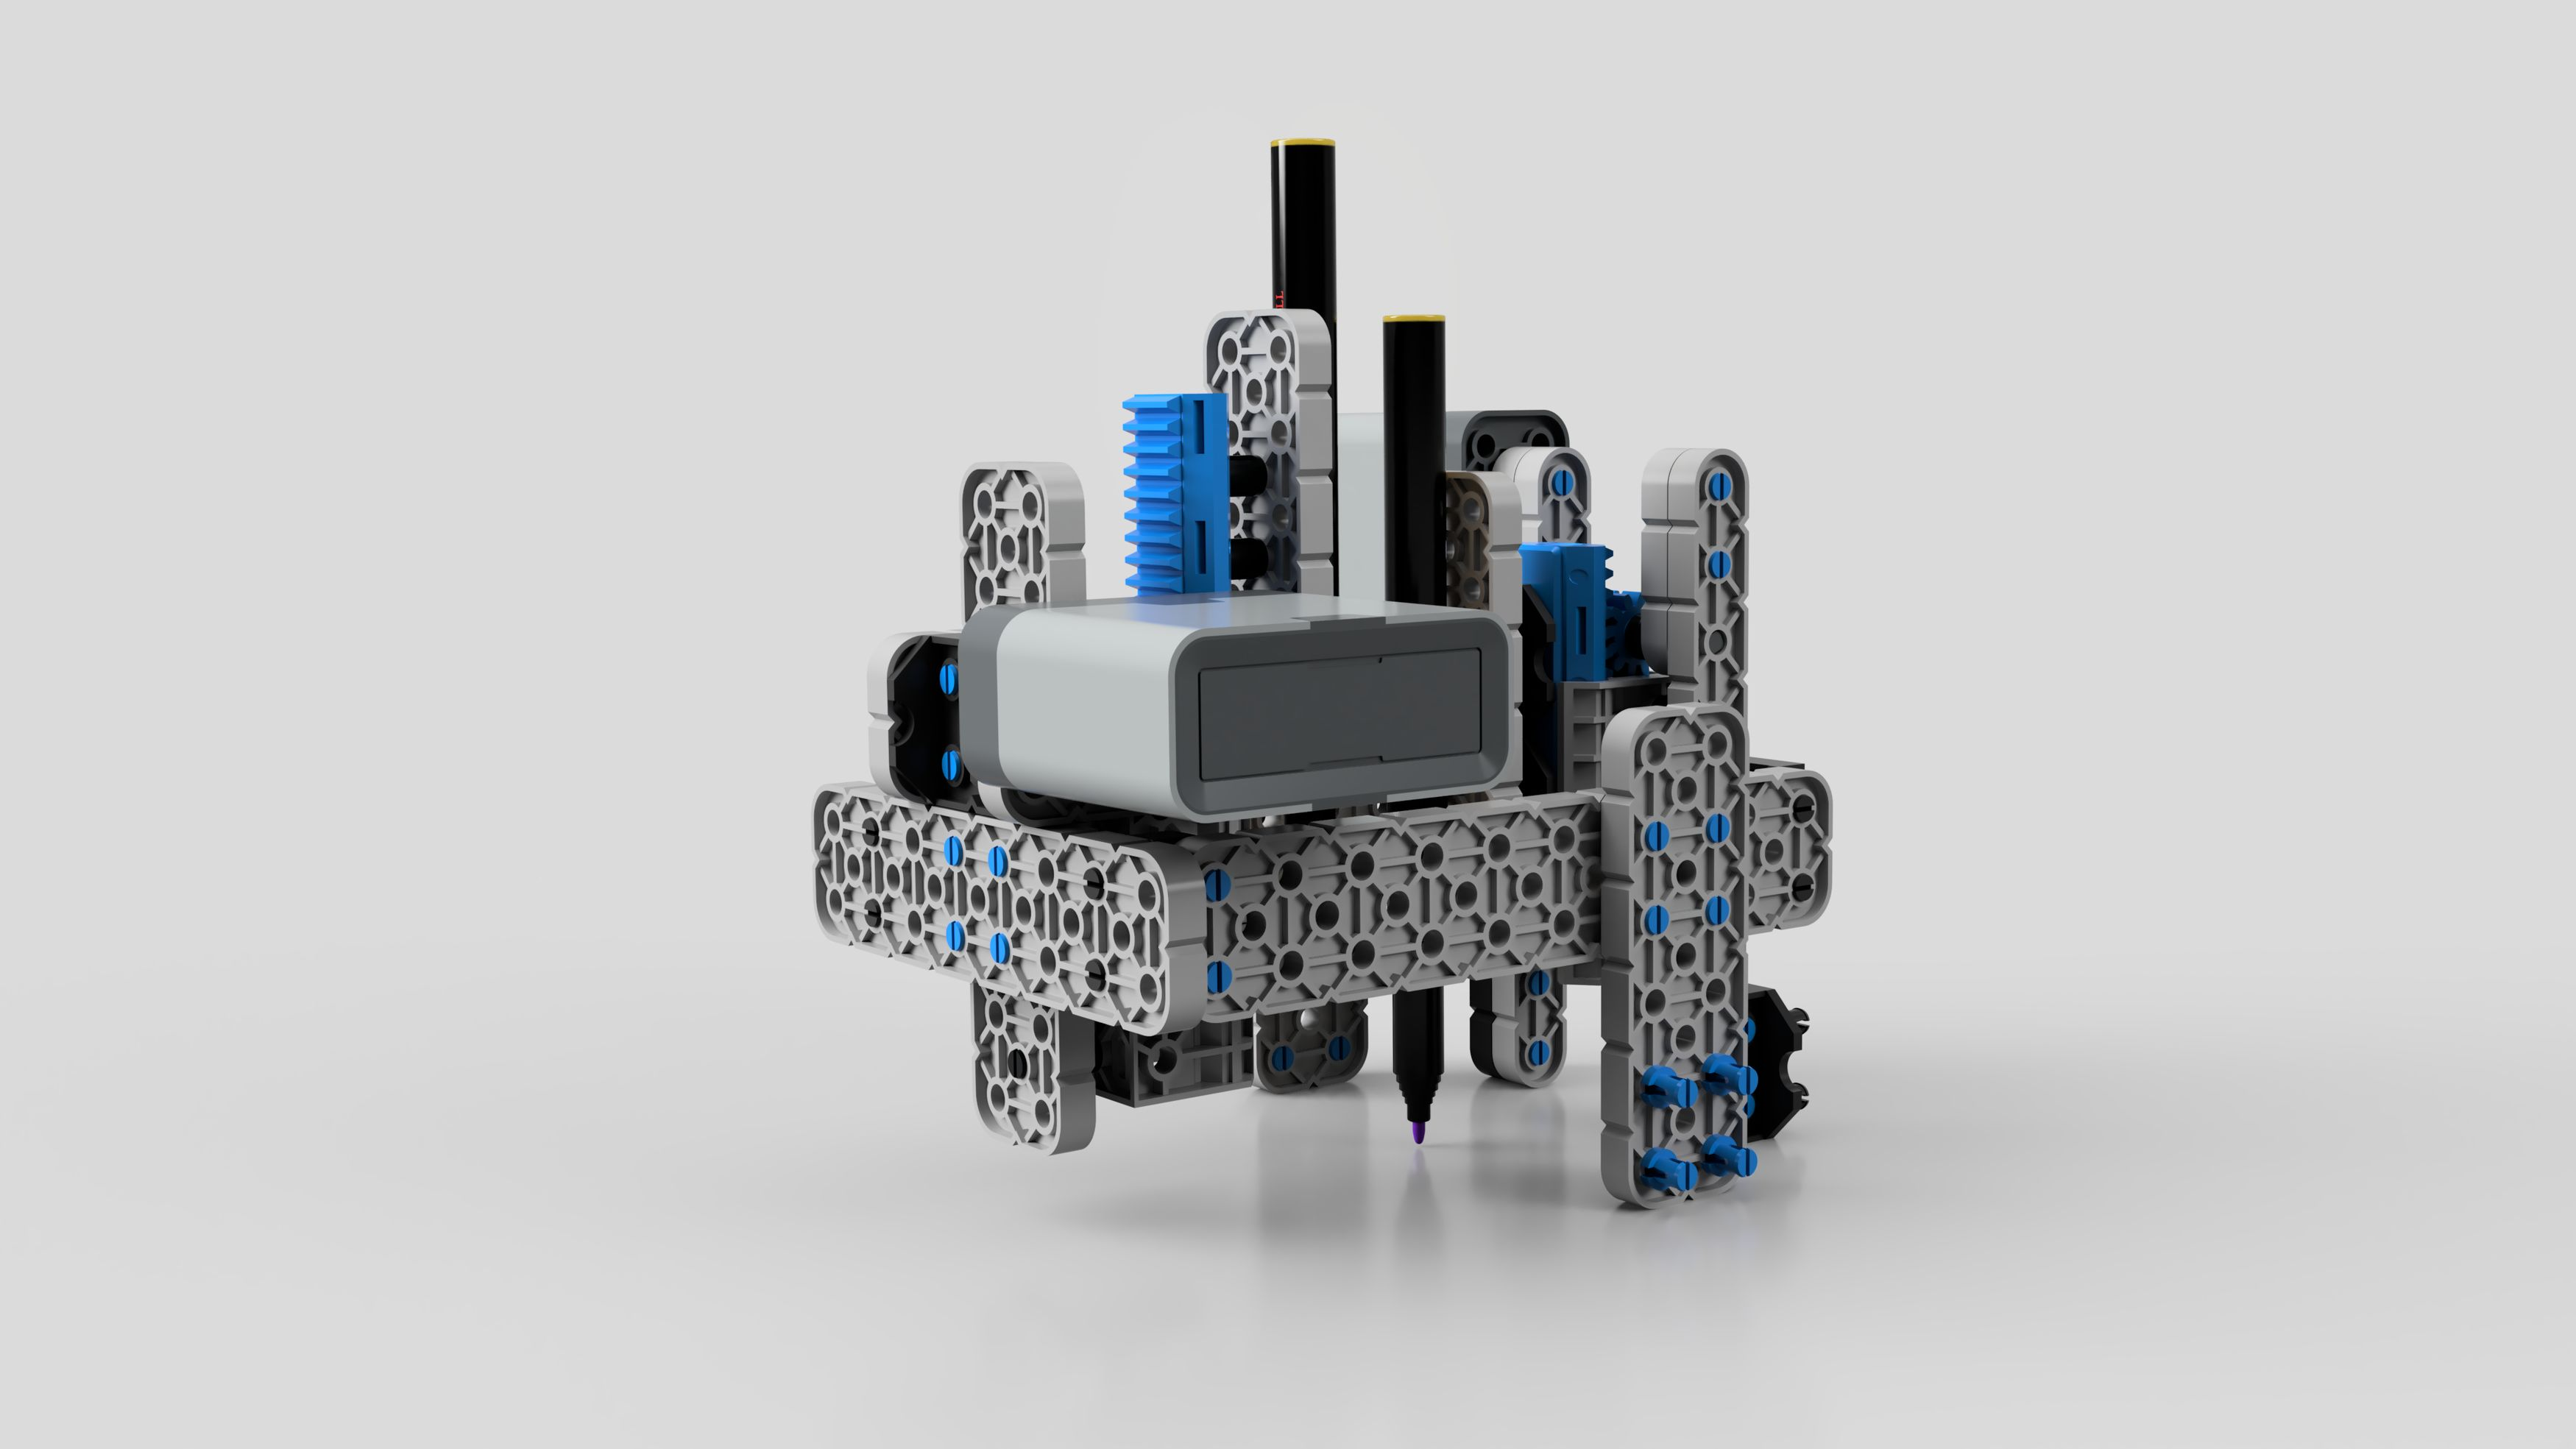 Robotic-pen-vex-iq---vexcode-v2-0-2020-may-24-04-41-53pm-000-customizedview9132634561-png-3500-3500